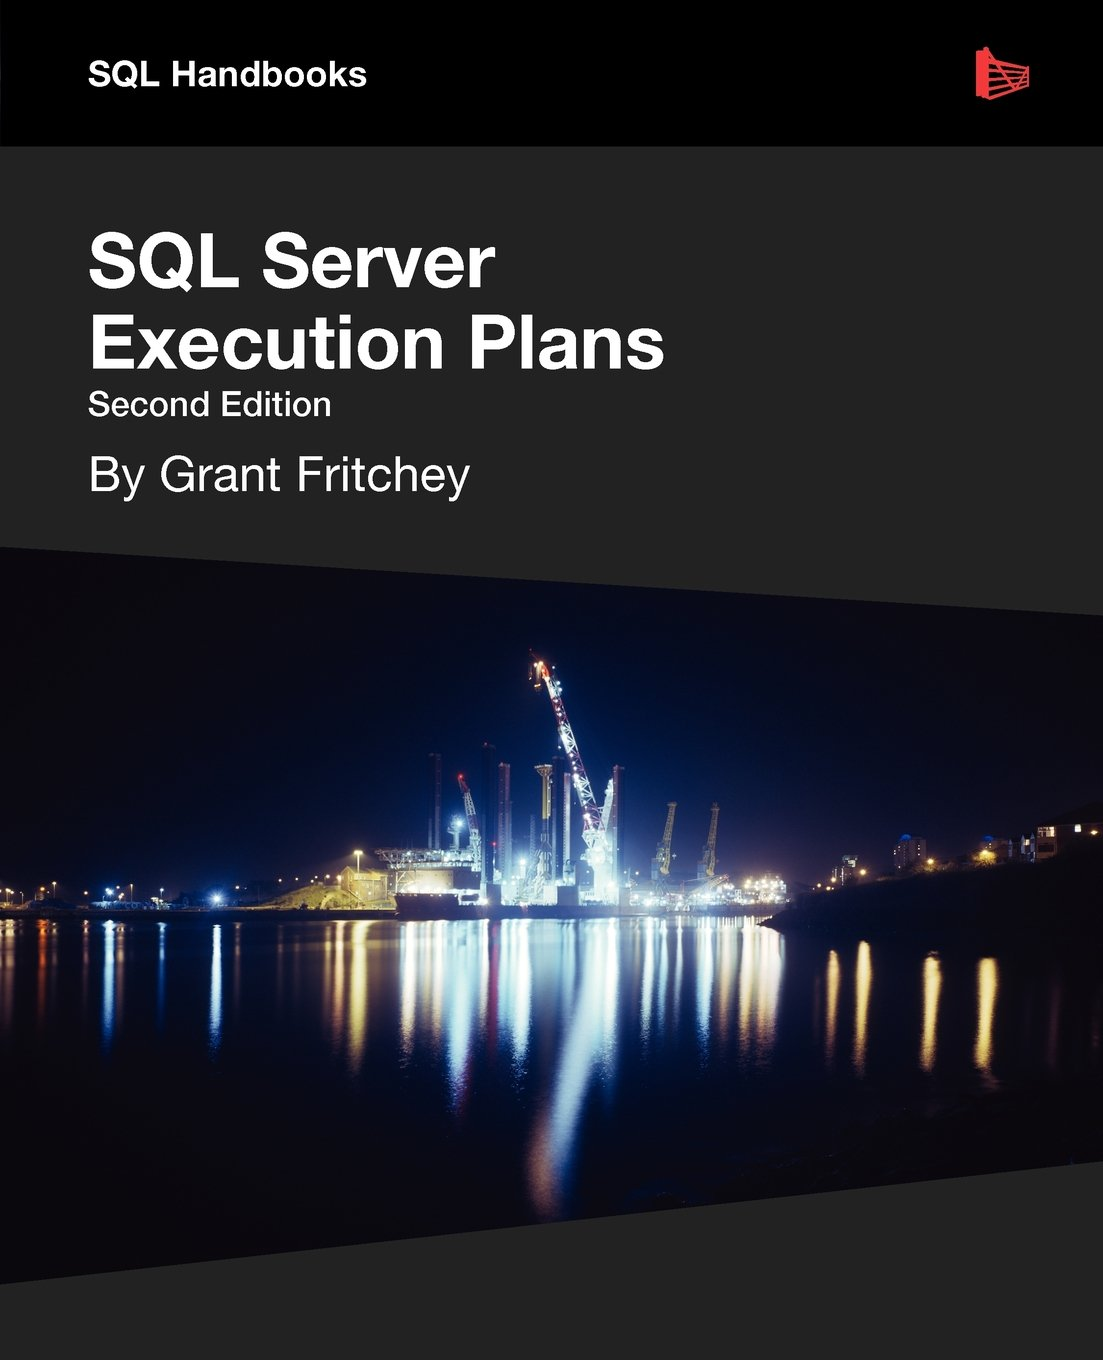 SQL Server Execution Plans Second Edition eBook Download